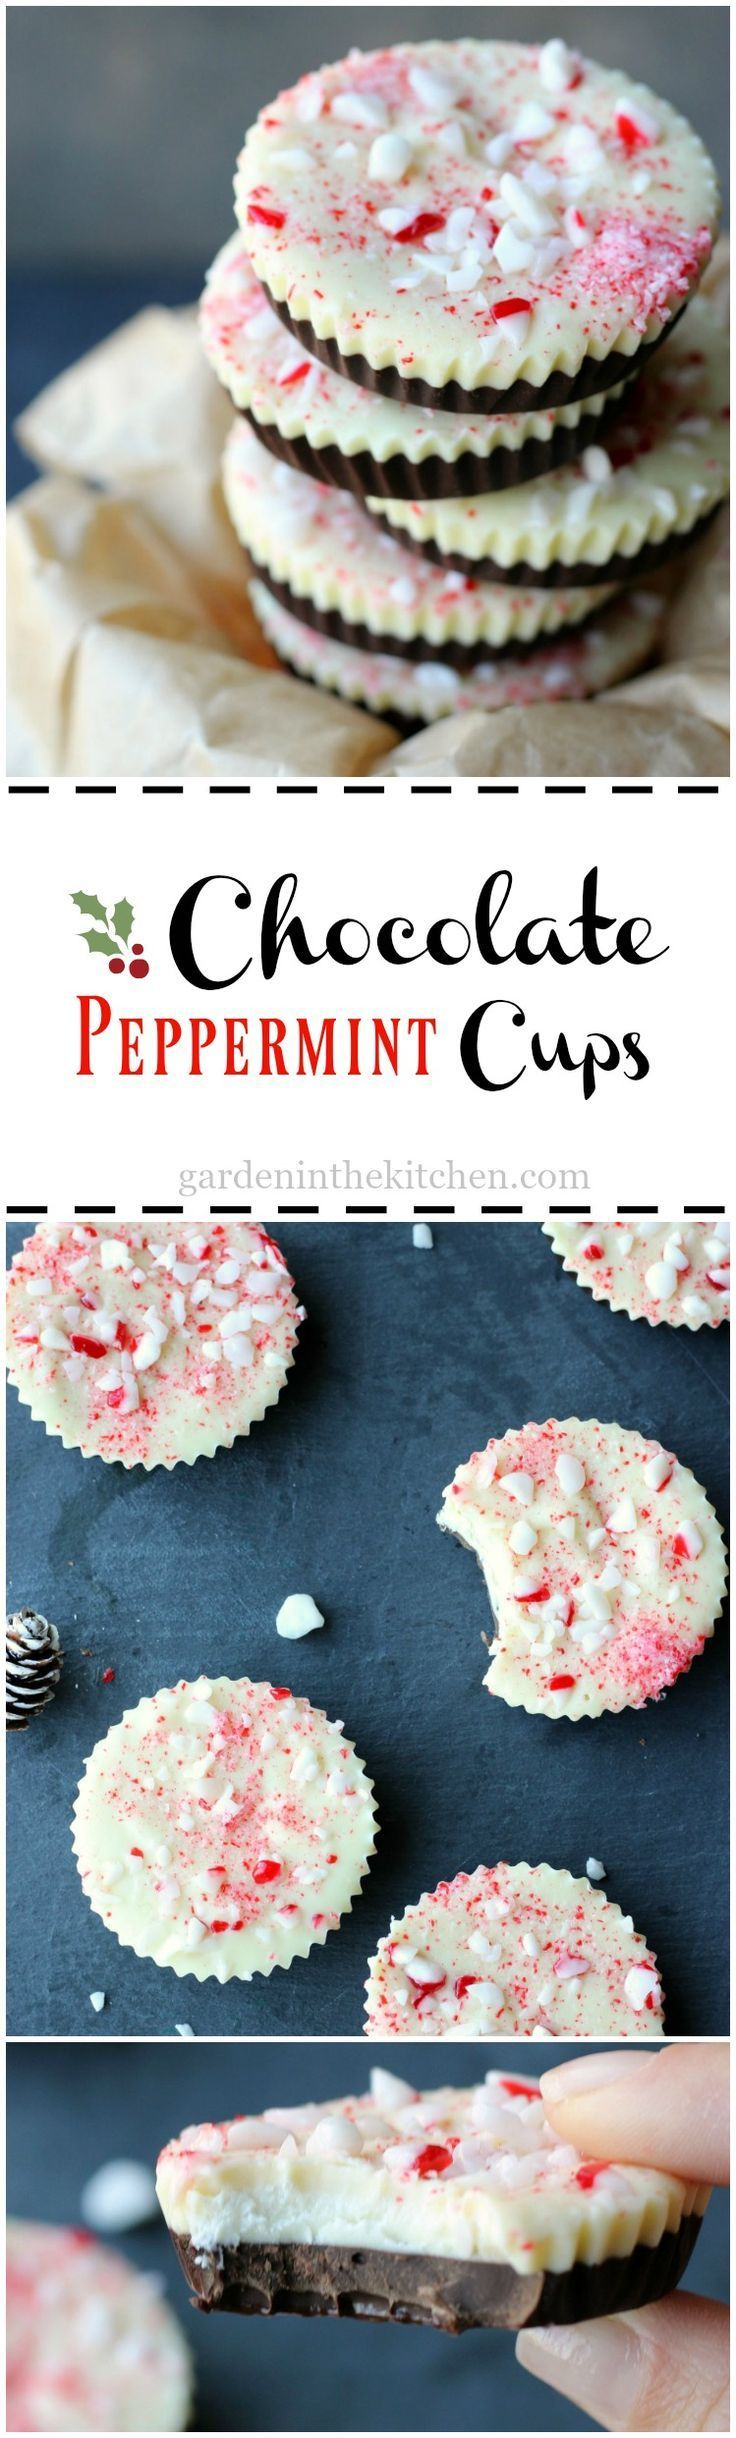 Yum. These Chocolate Peppermint Cups look so festive and delicious.